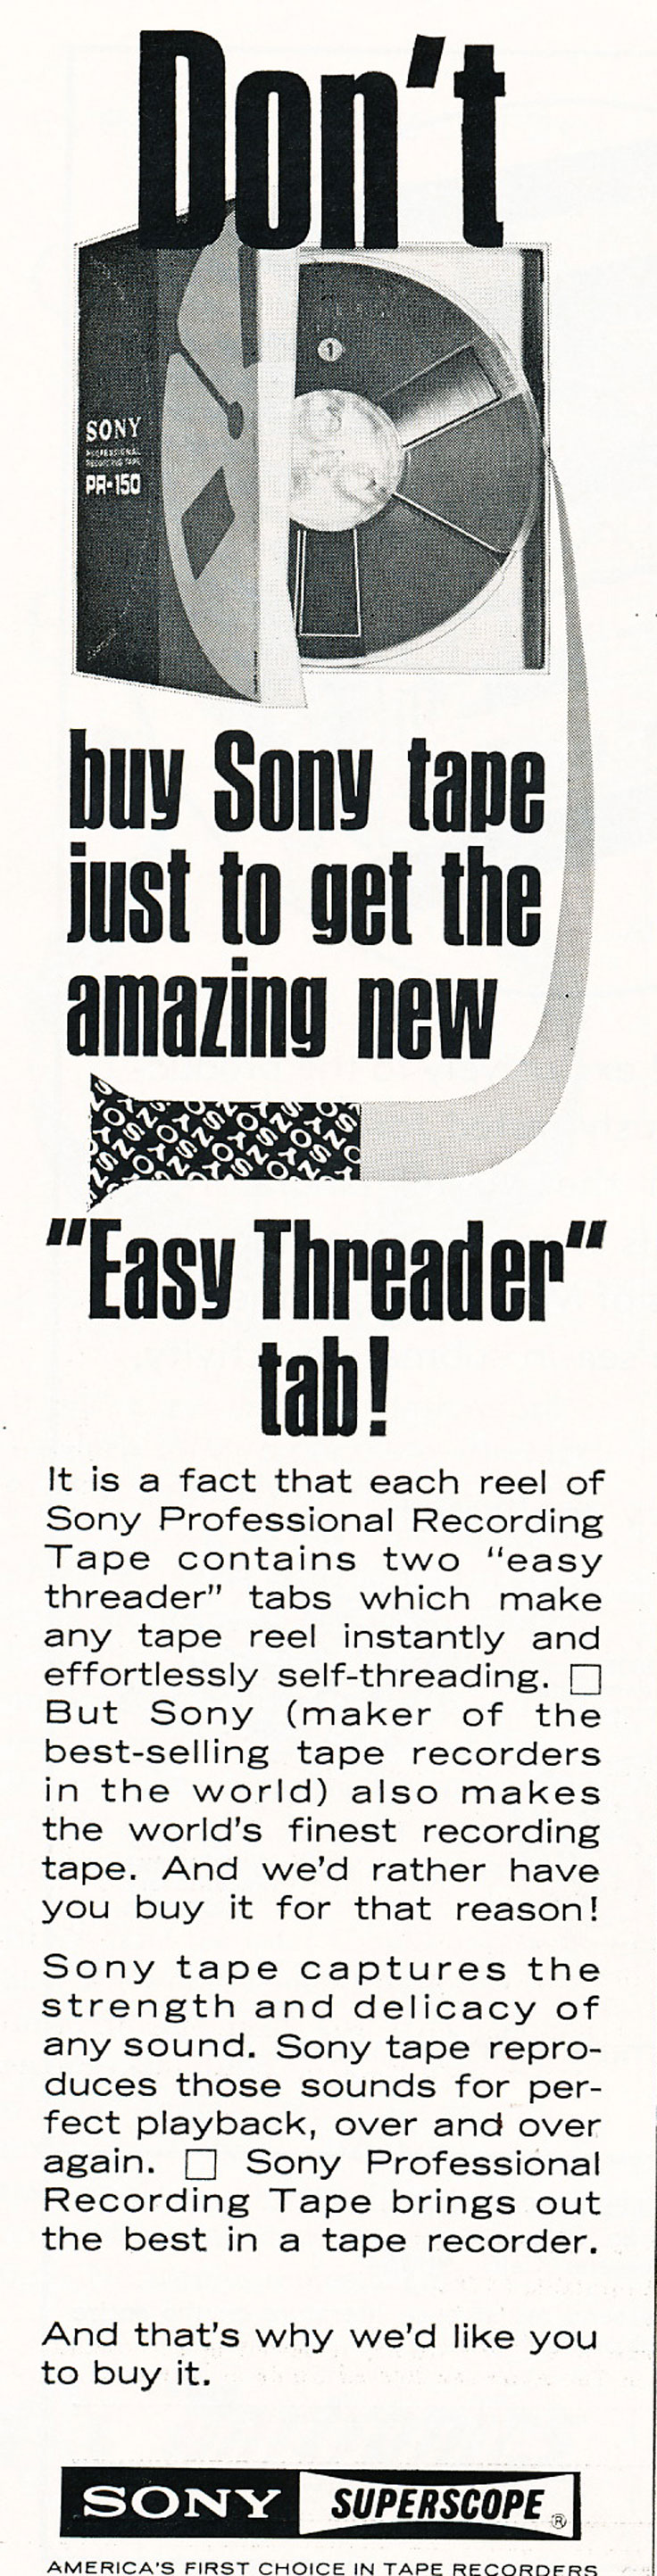 1967 ad for the Sony reel recording tape in Reel2ReelTexas.com's images/R2R/vintage recording collection